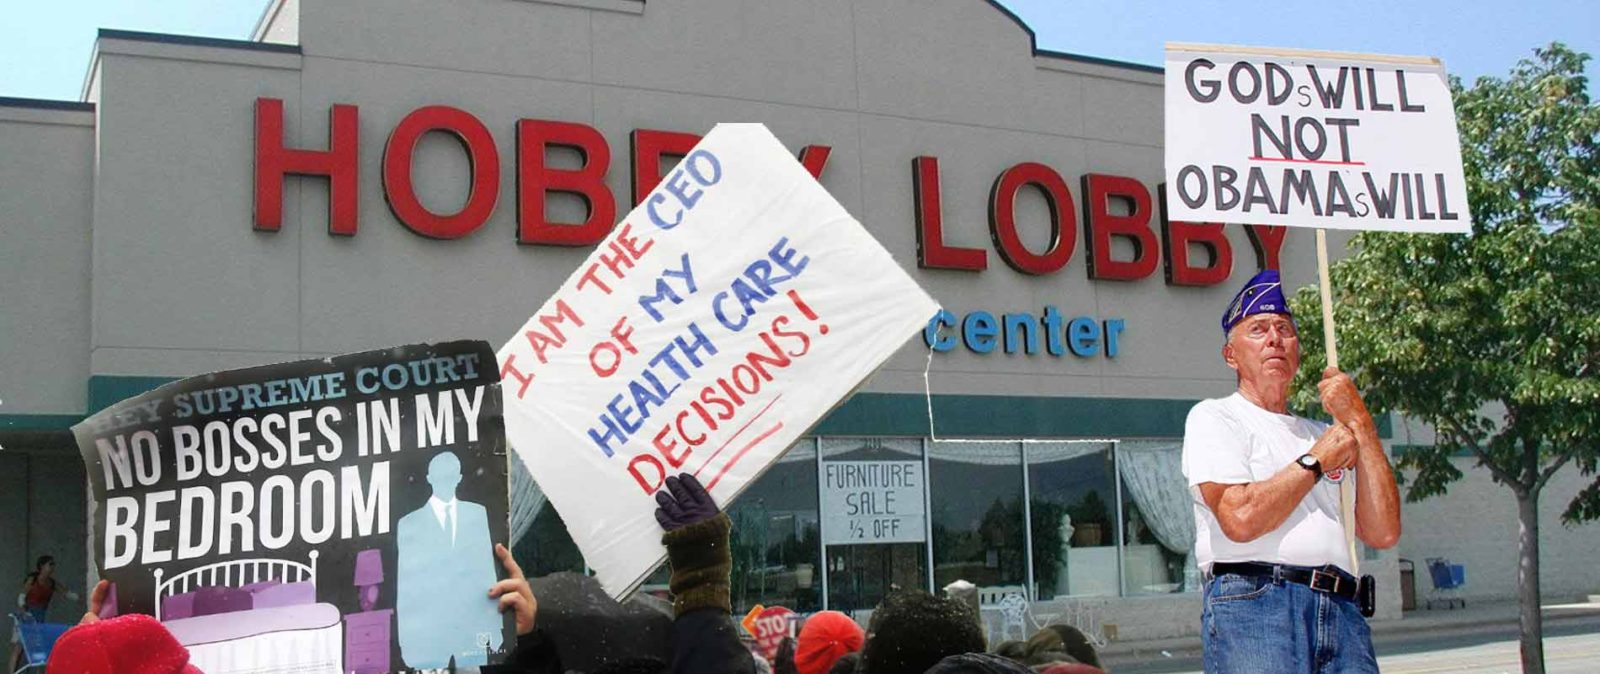 Hobby Lobby vs. Supreme Court